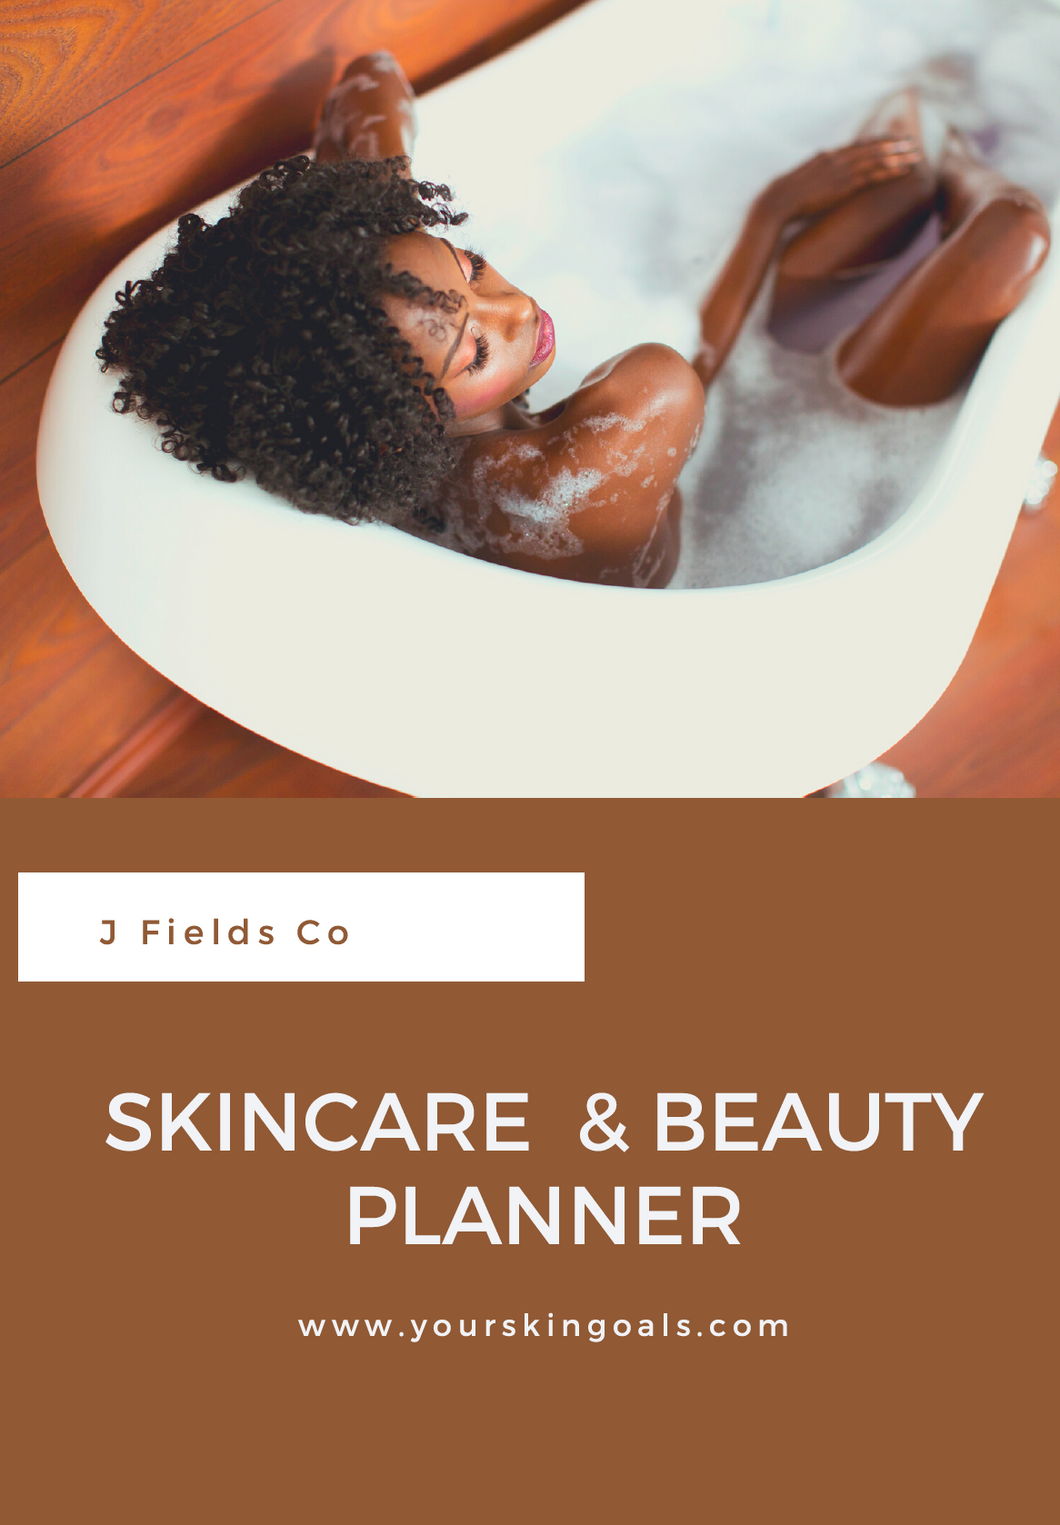 Skincare & Beauty Planner